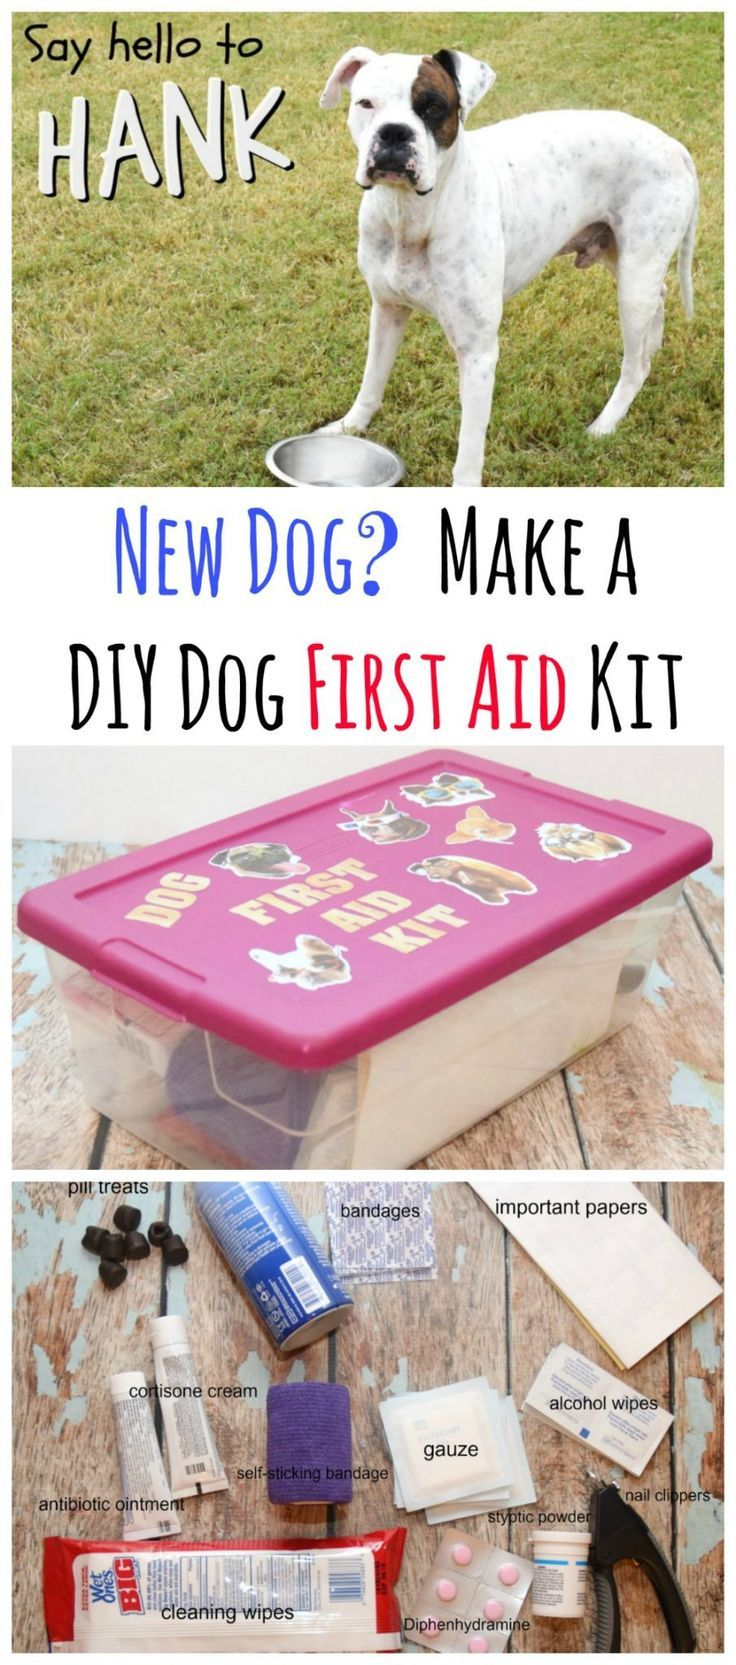 Have you got a new rescue dog or puppy?  Create this easy do it yourself kit to easily find what you need to care for them.  Make a DIY First Aid Kit for your New Dog! #ad #NewBeneful